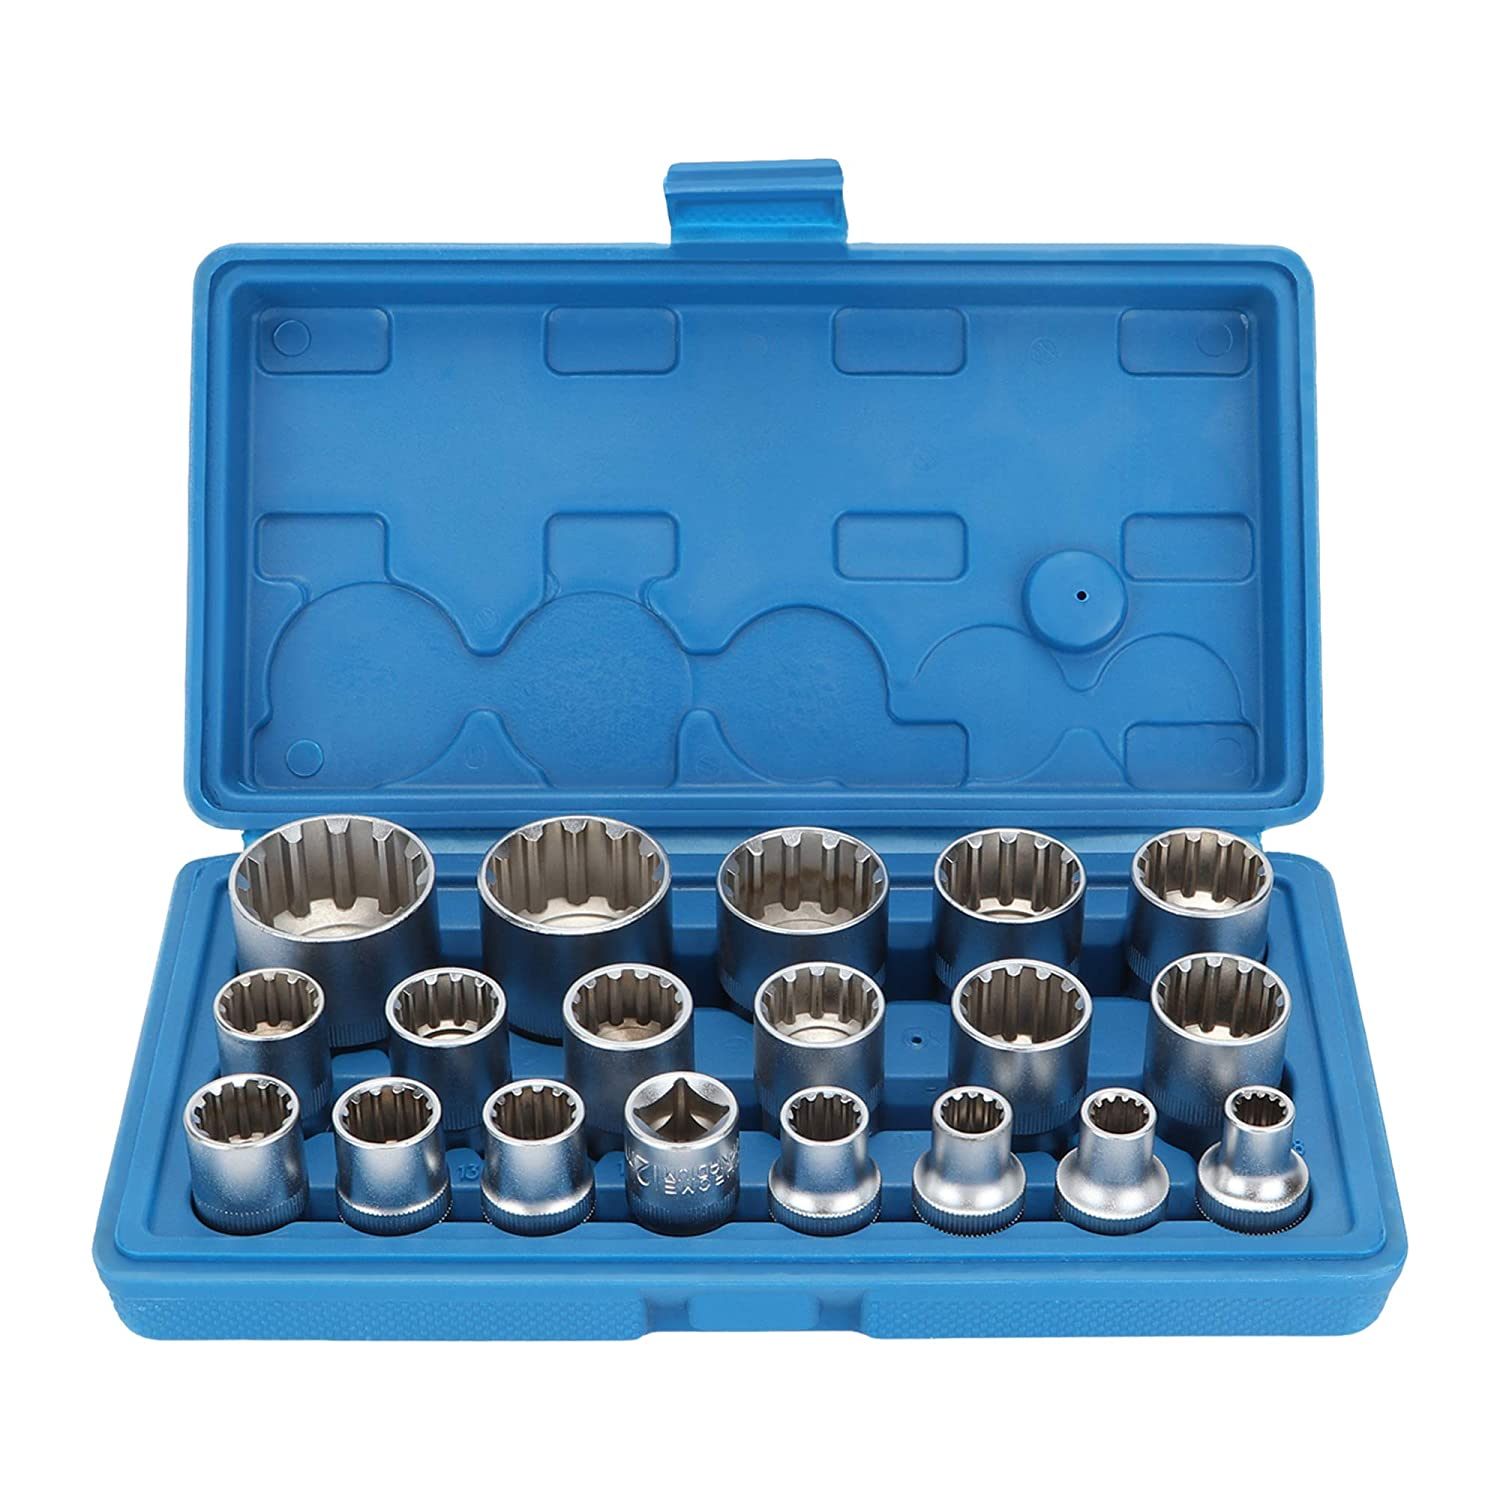 OCGIG 9 Pcs 3/8' Drive Hex Allen Socket Key Bits Set Kit H2 H3 H4 H5 H5.5 H6 H7 H8 H10 S2 Steel